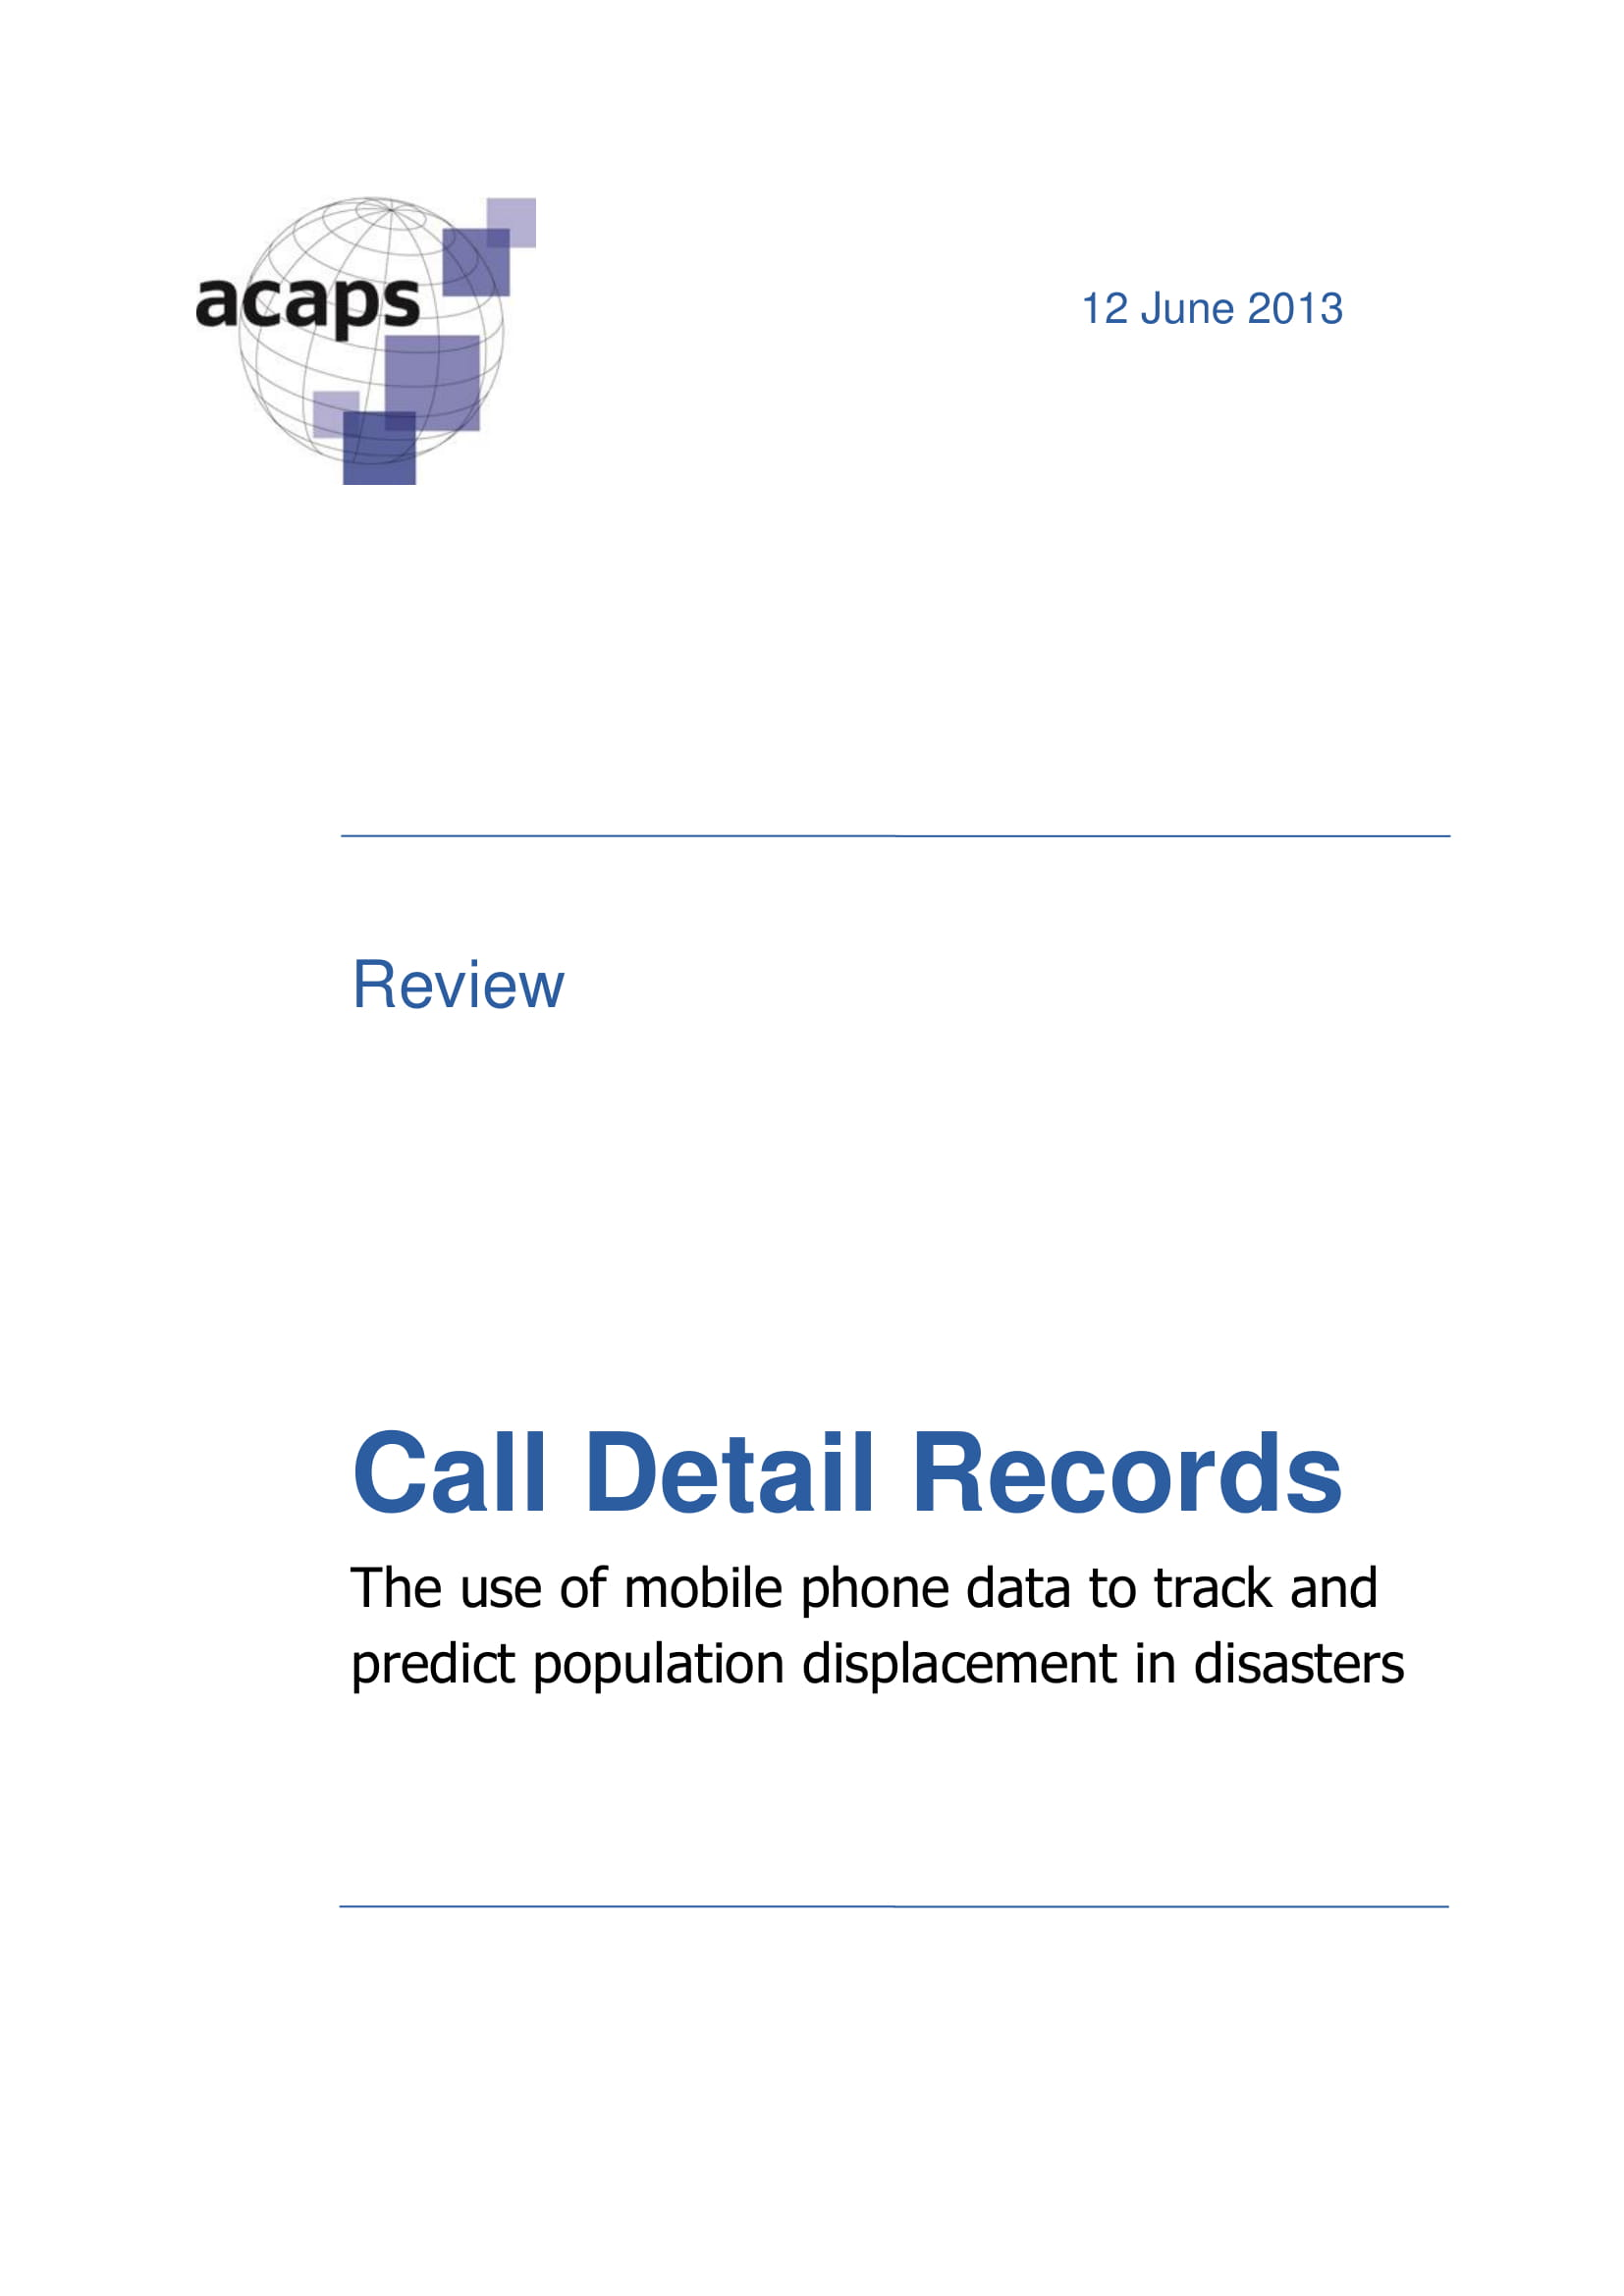 printable call detail record example 01